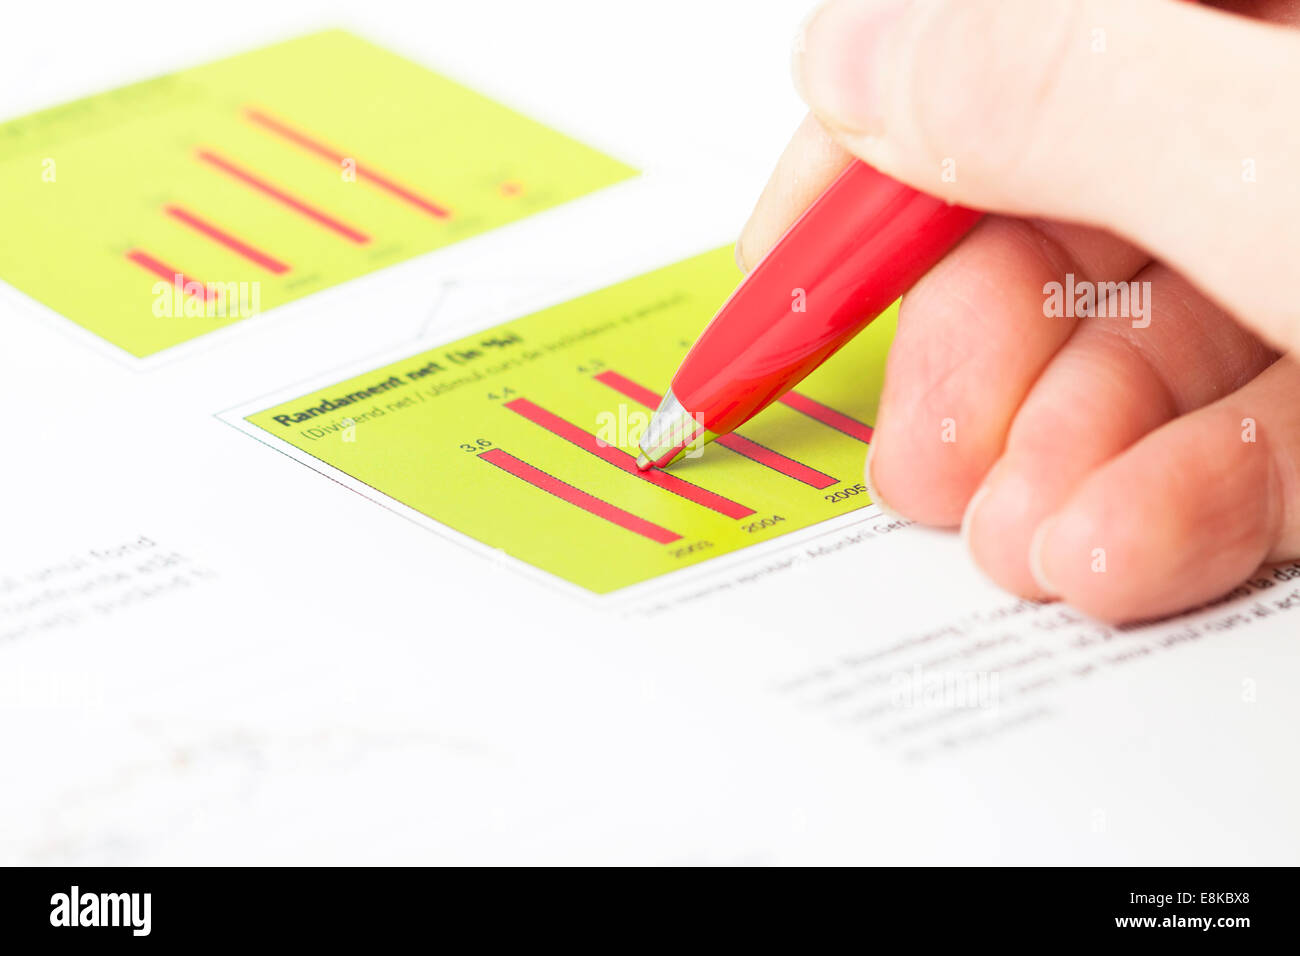 Close-up of female hand holding pen over business graph - Stock Image